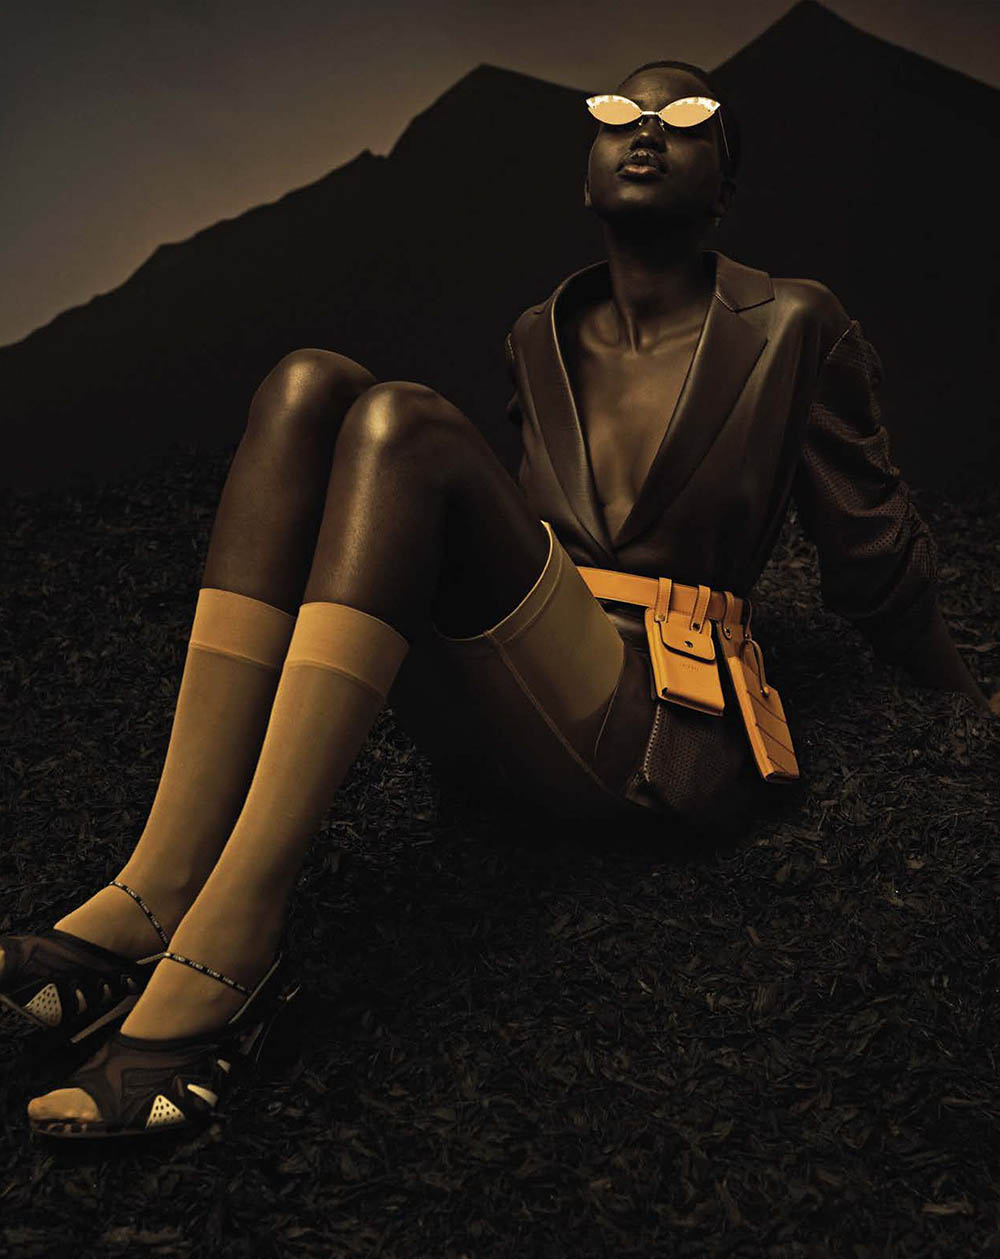 Adut-Akech-by-Josh-Olins-for-Vogue-Italia-April-2019-1.jpg